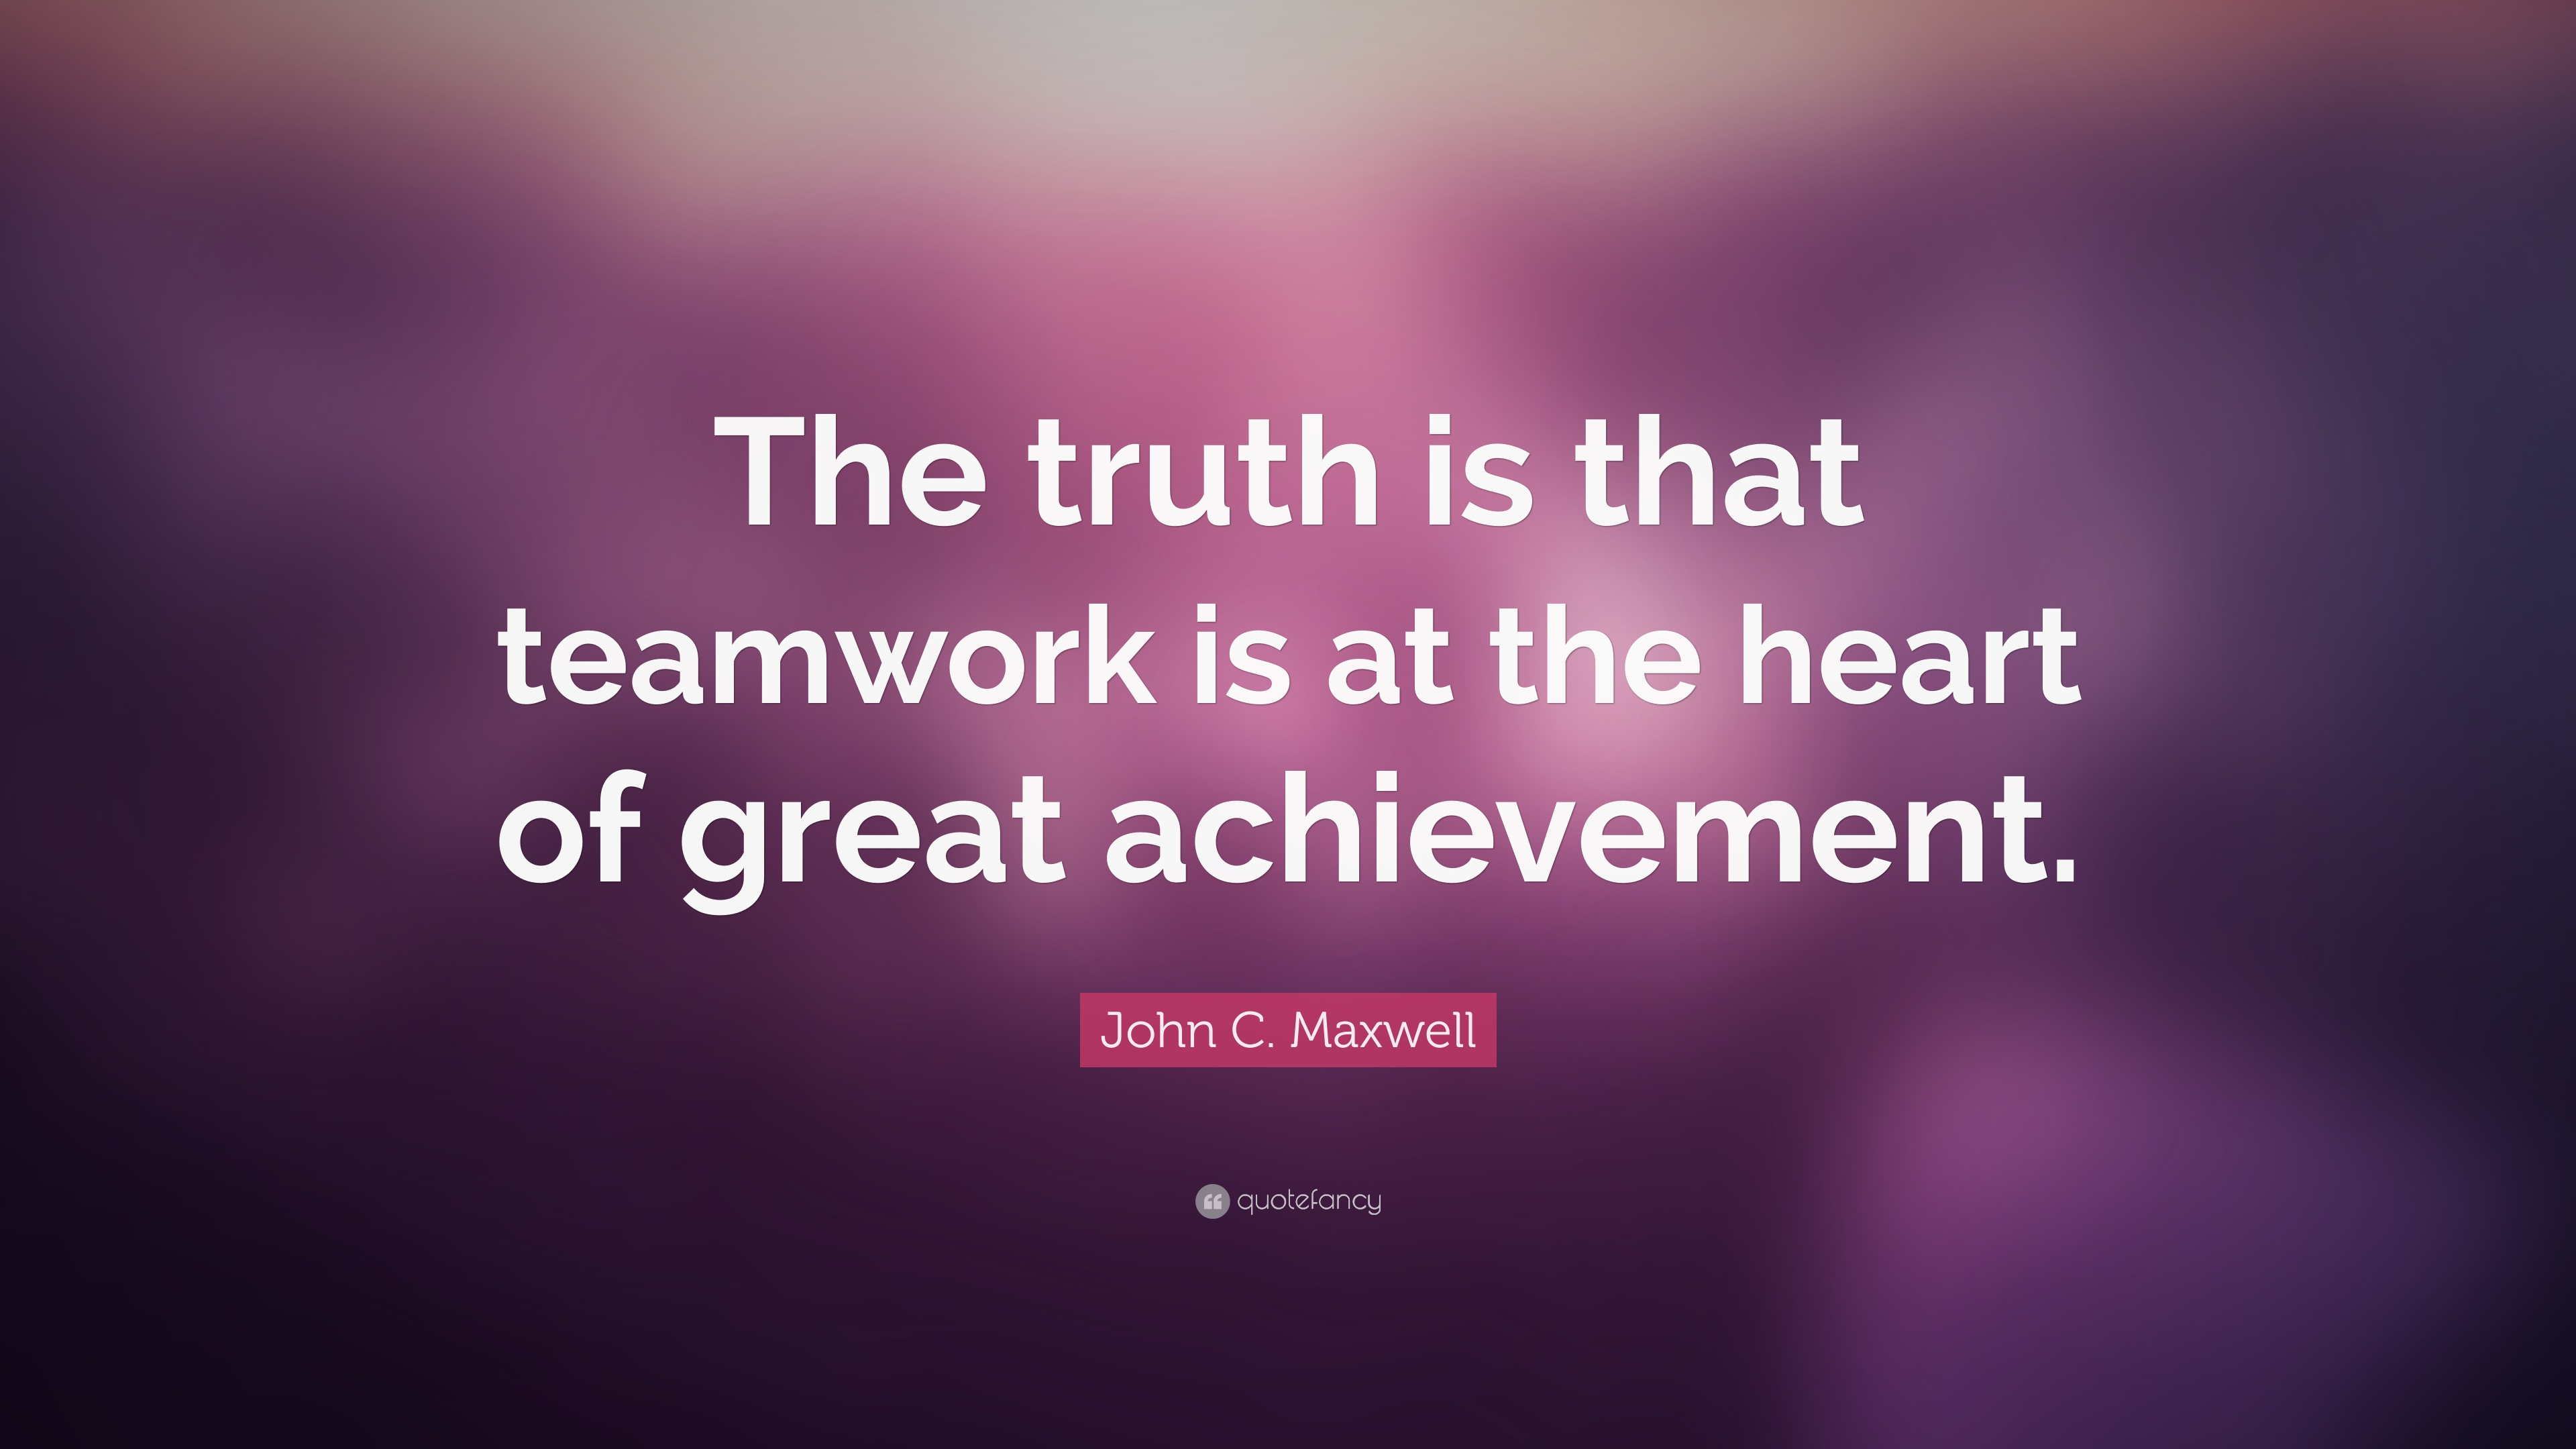 Teamwork Quotes Teamwork Quotes 40 Wallpapers  Quotefancy